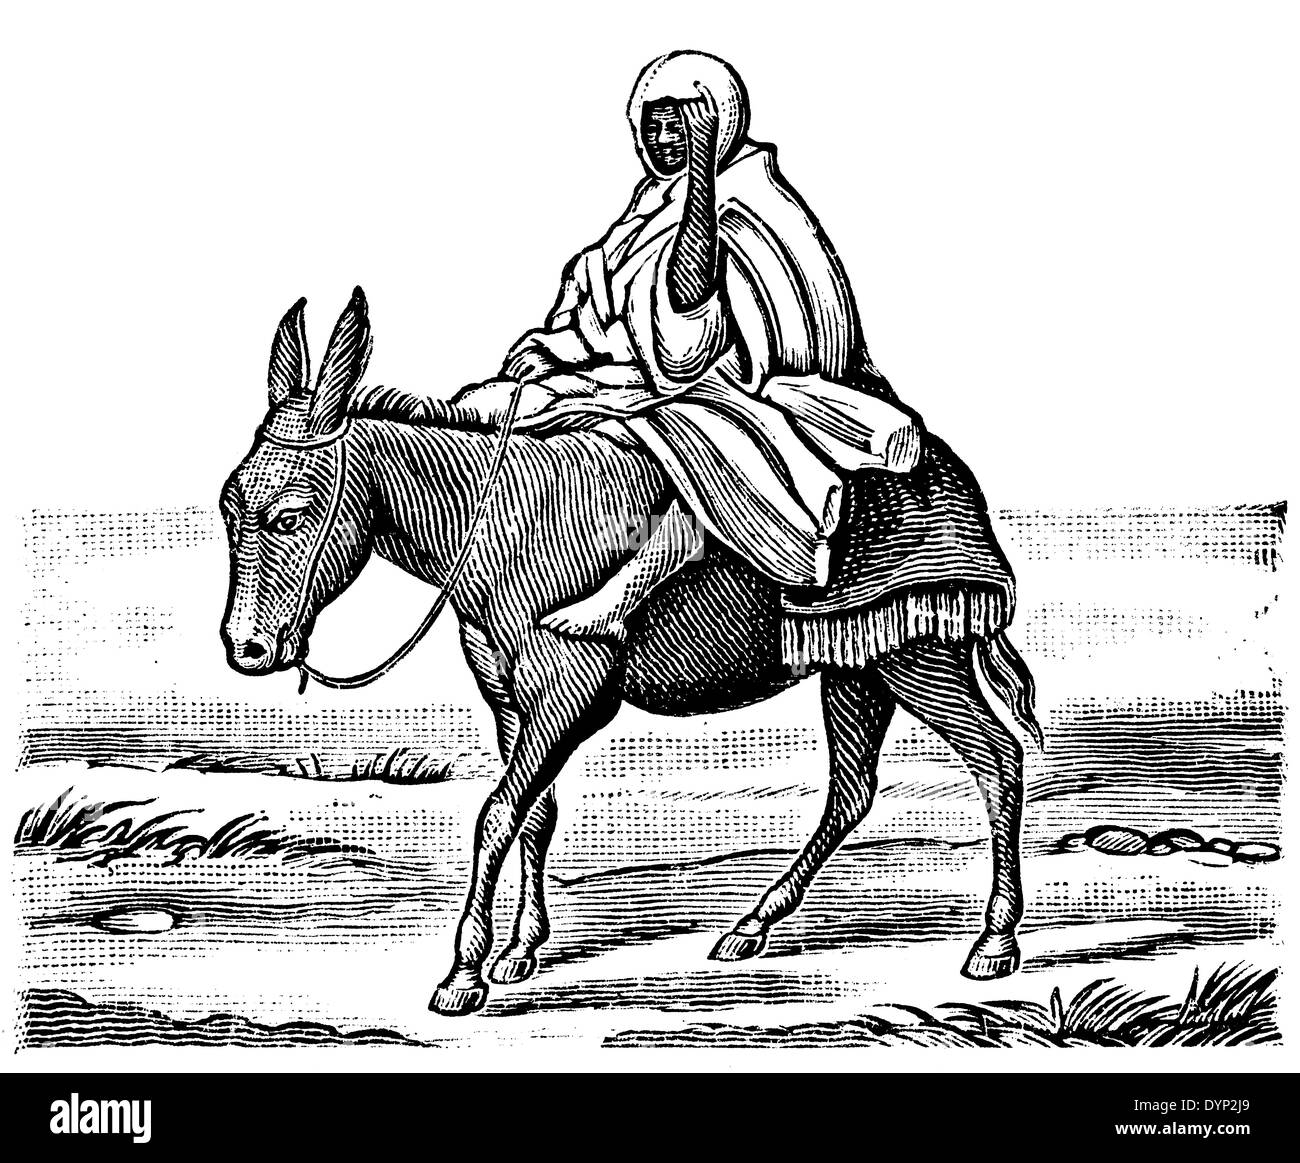 Man in traditional dress riding donkey, illustration from Soviet encyclopedia, 1926 - Stock Image